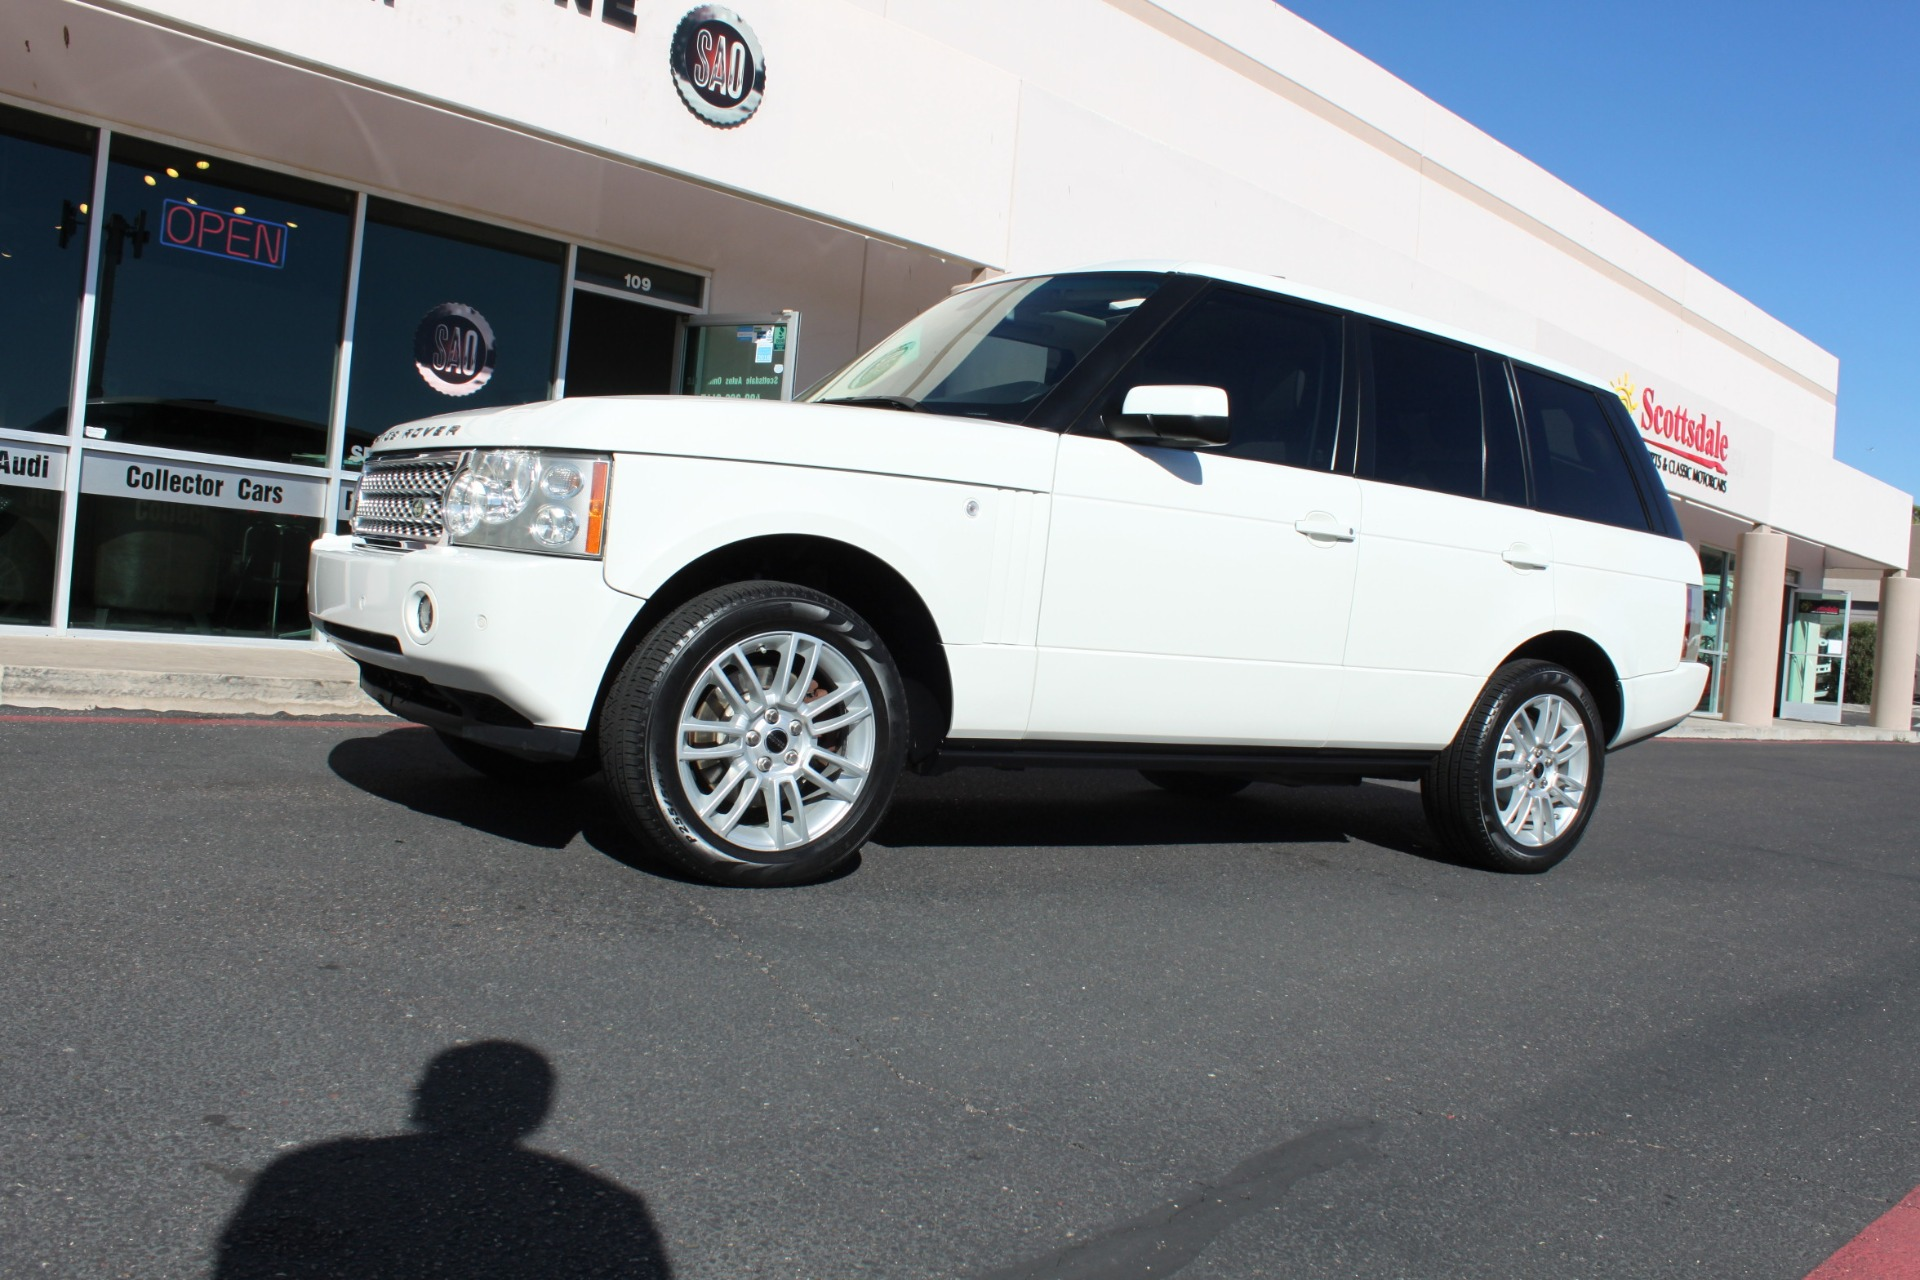 Used-2007-Land-Rover-Range-Rover-HSE-Dodge